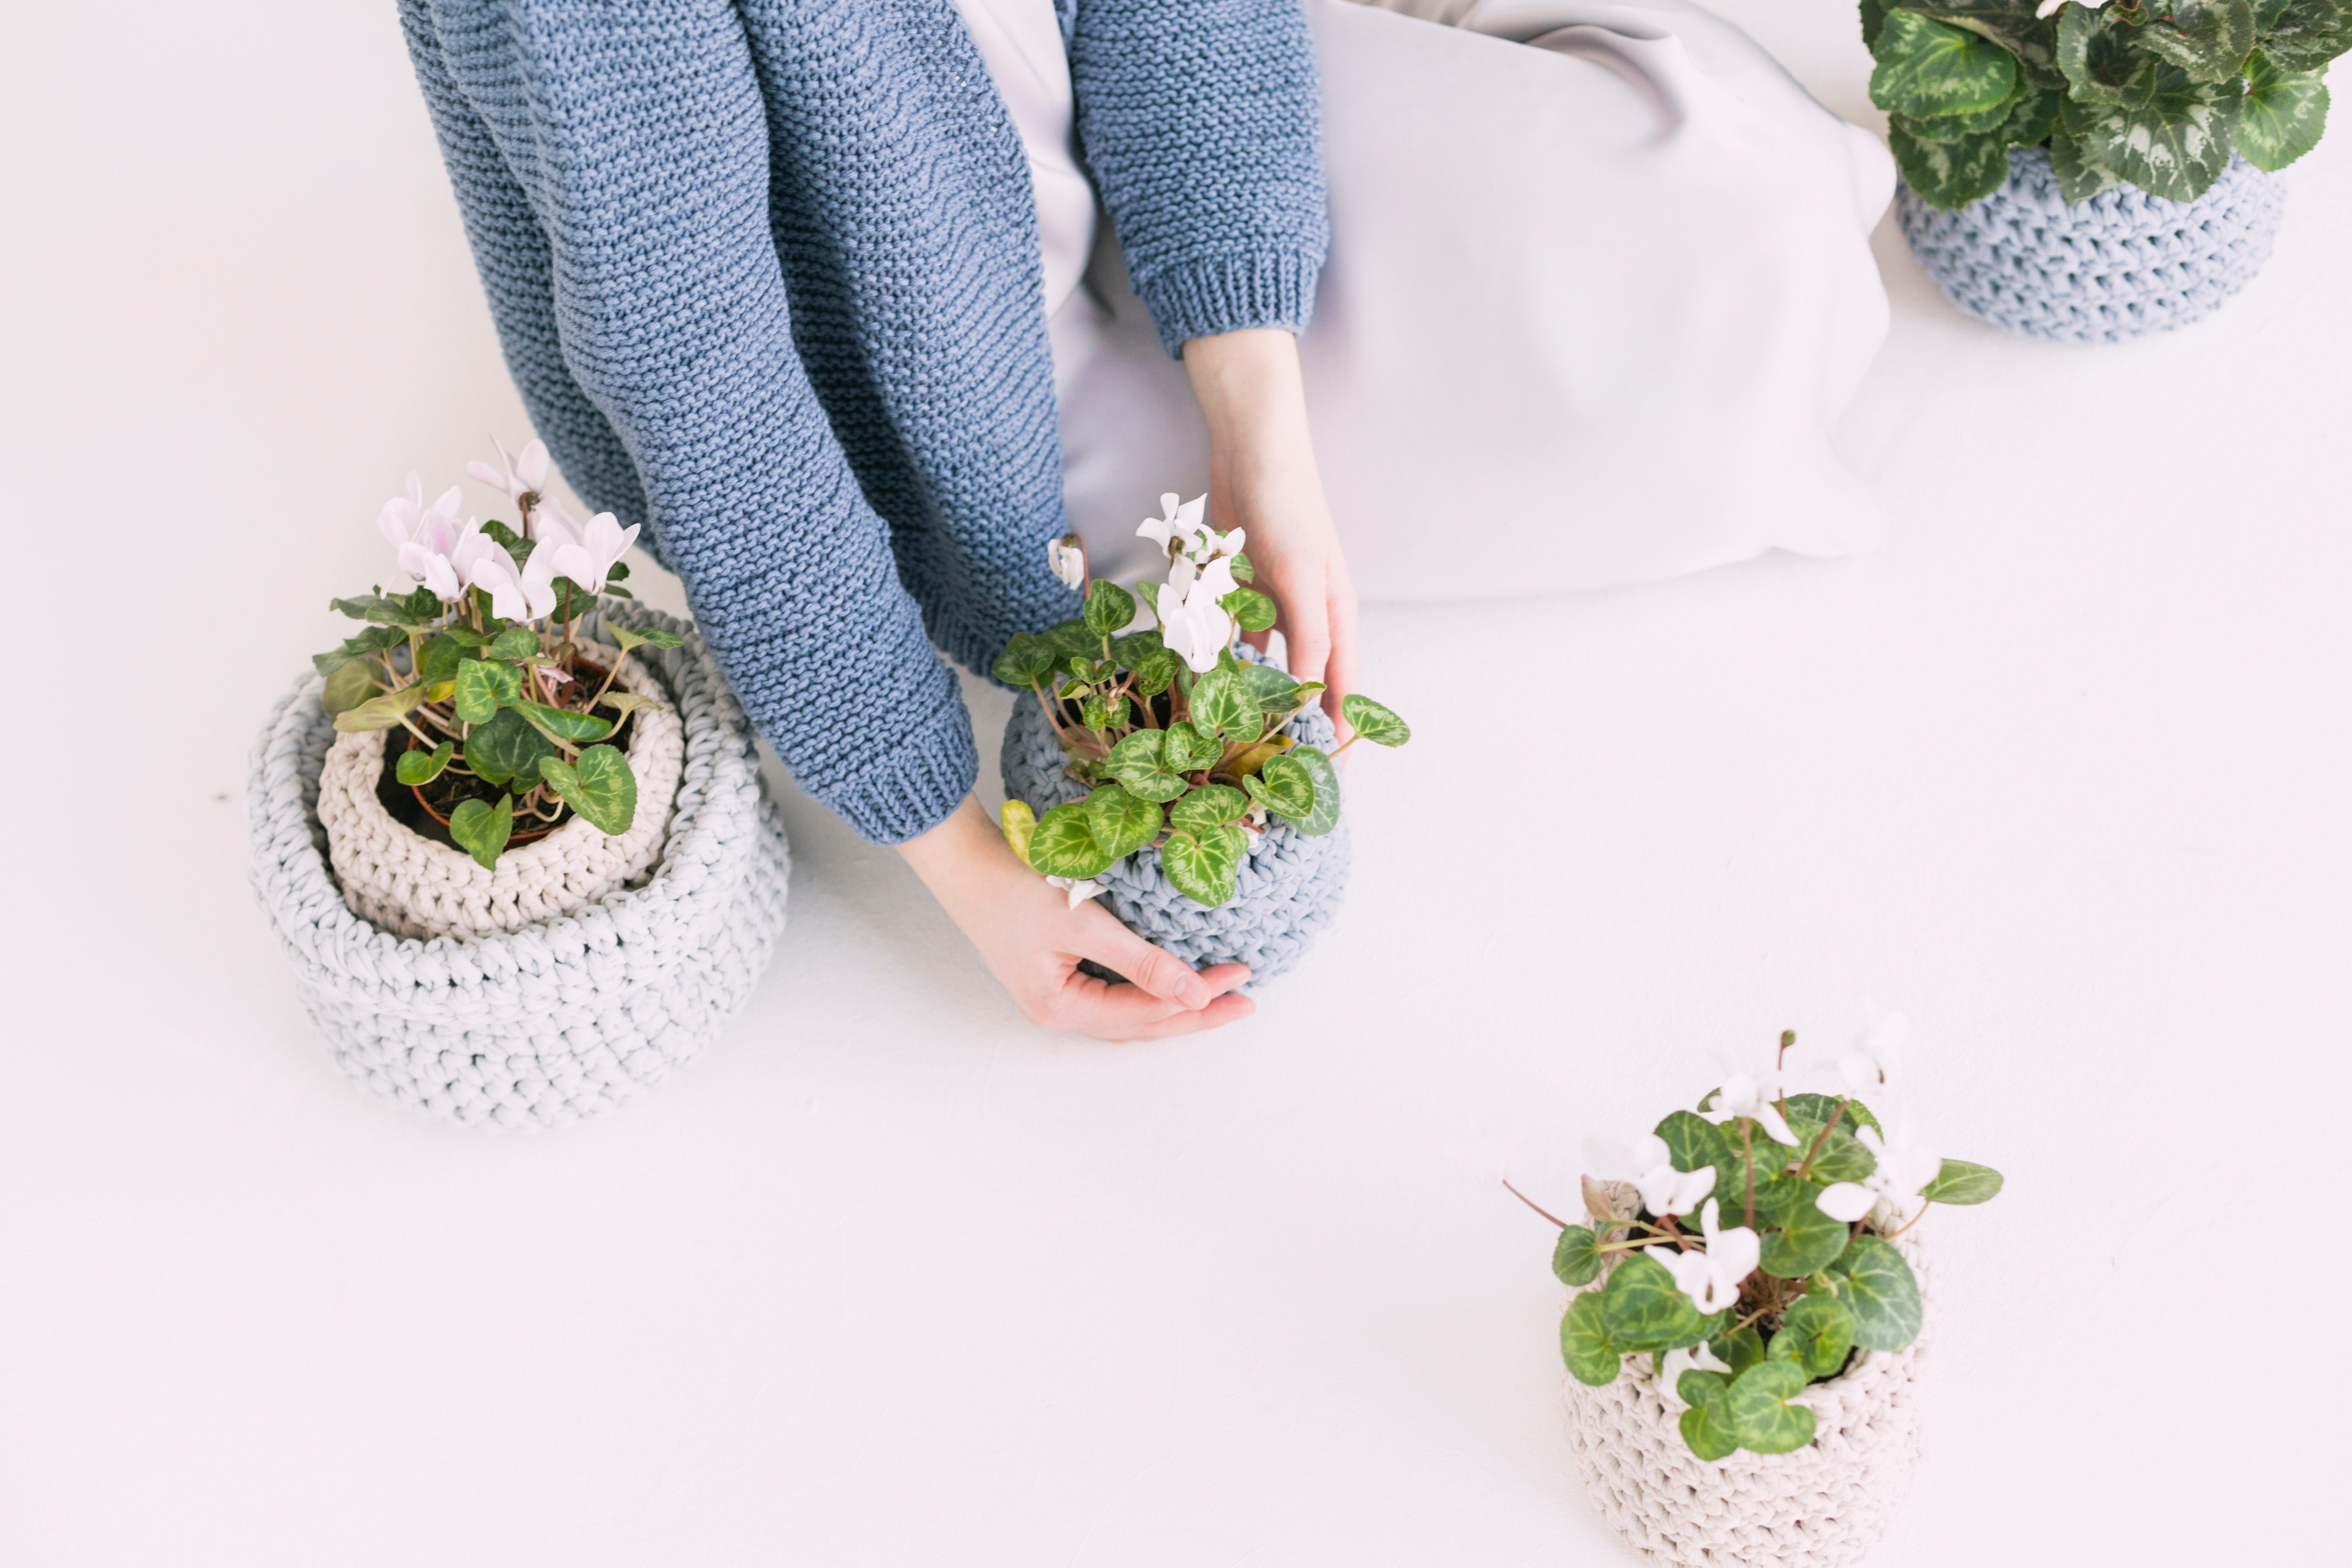 Person in blue sweater holding green potted plant photo